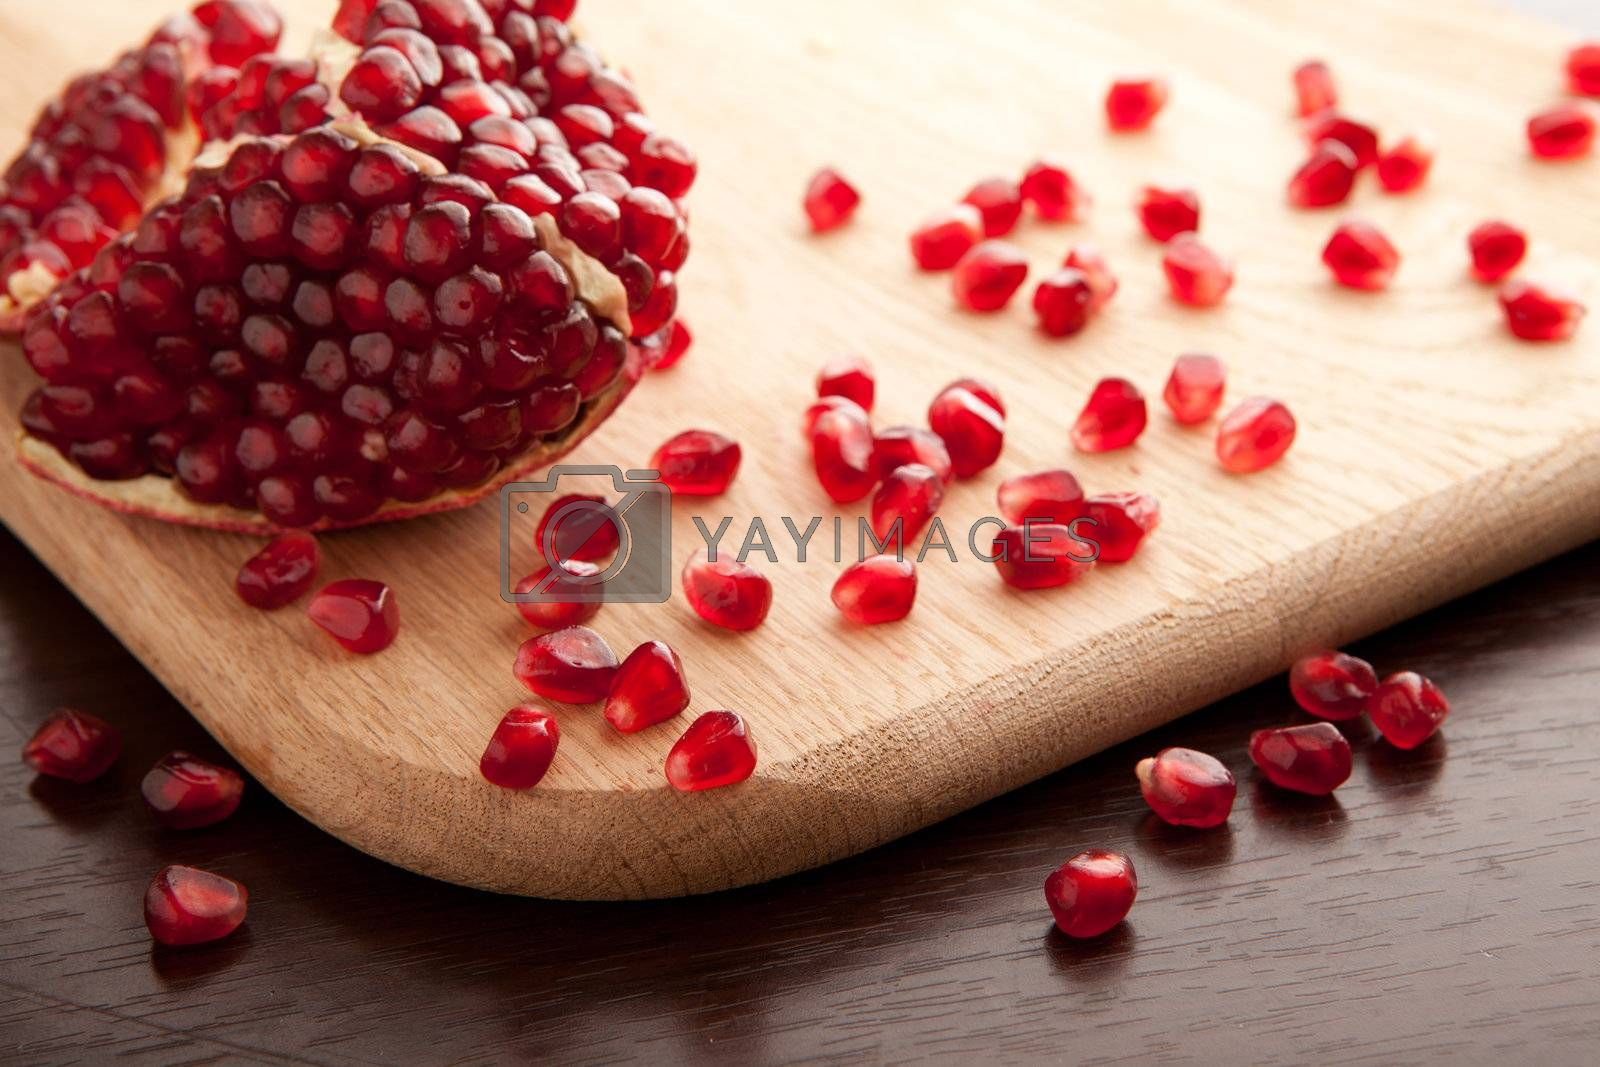 Royalty free image of Pomegranate slices and seeds on wooden background by SergeyAK